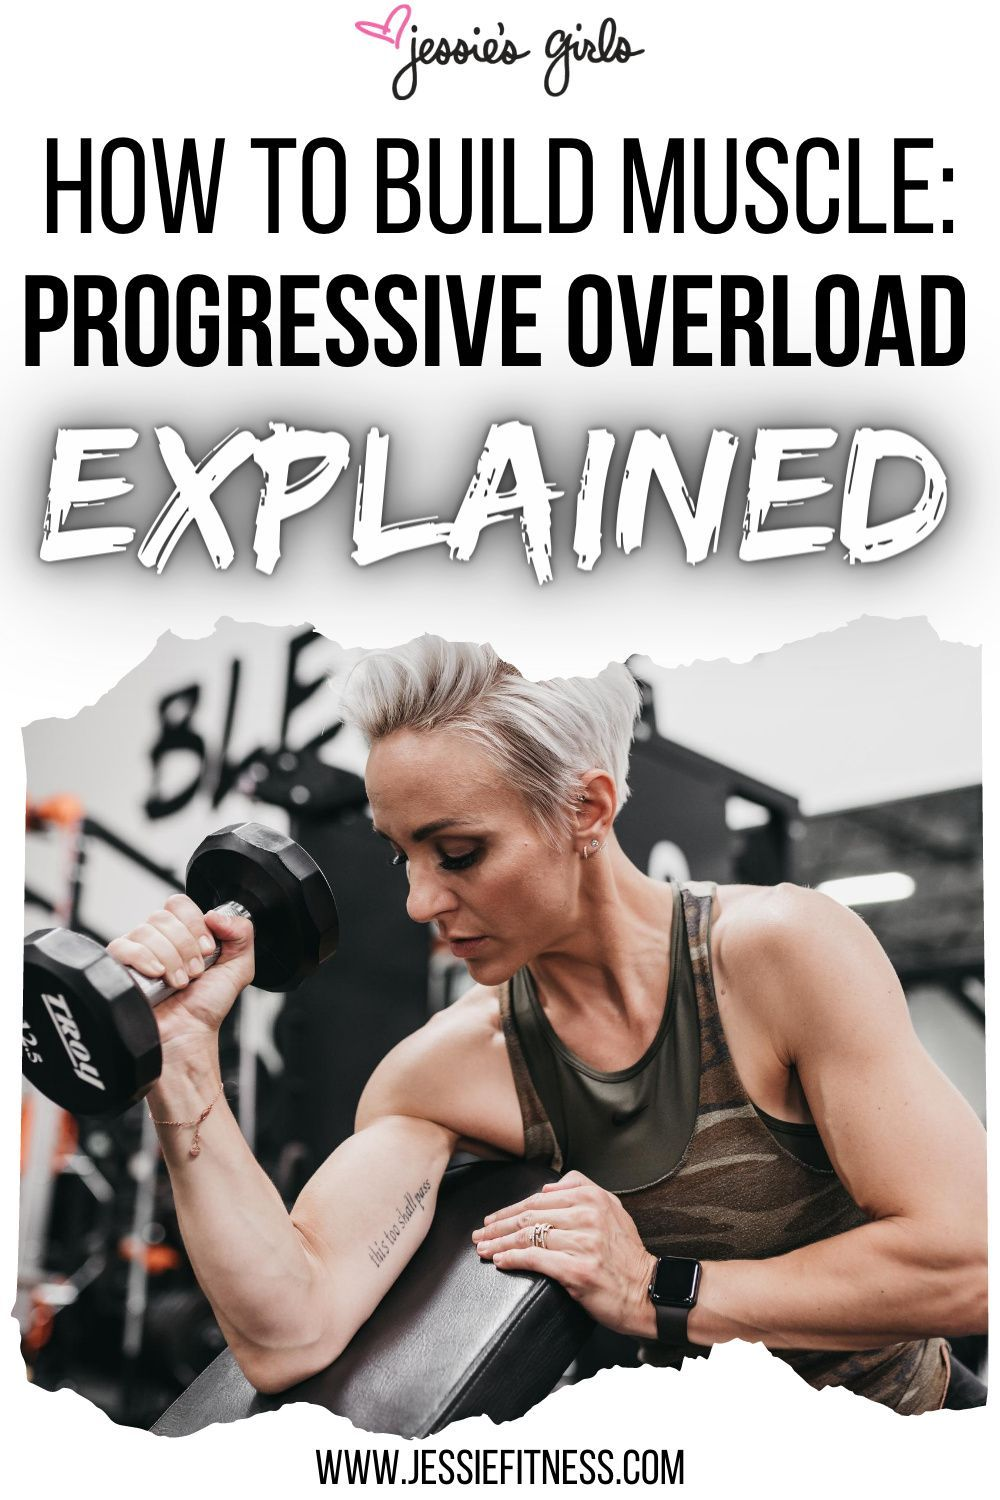 Progressive Overload tips and Tricks for Women to Build Muscle